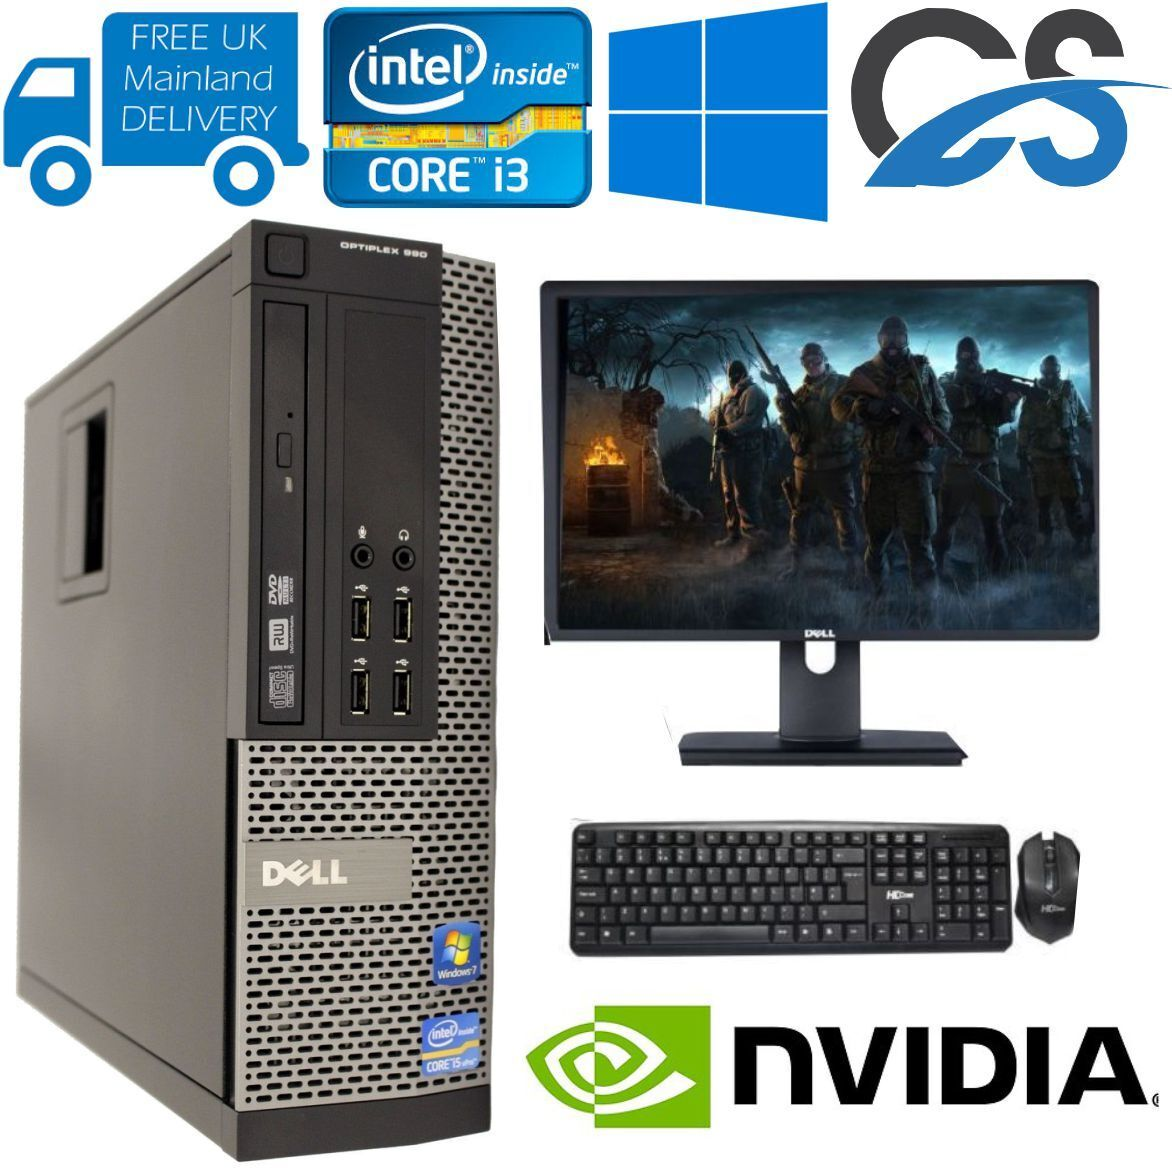 Computer Games - FAST GAMING DELL BUNDLE TOWER PC FULL SET COMPUTER SYSTEM INTEL i3 8GB 1TB GT710